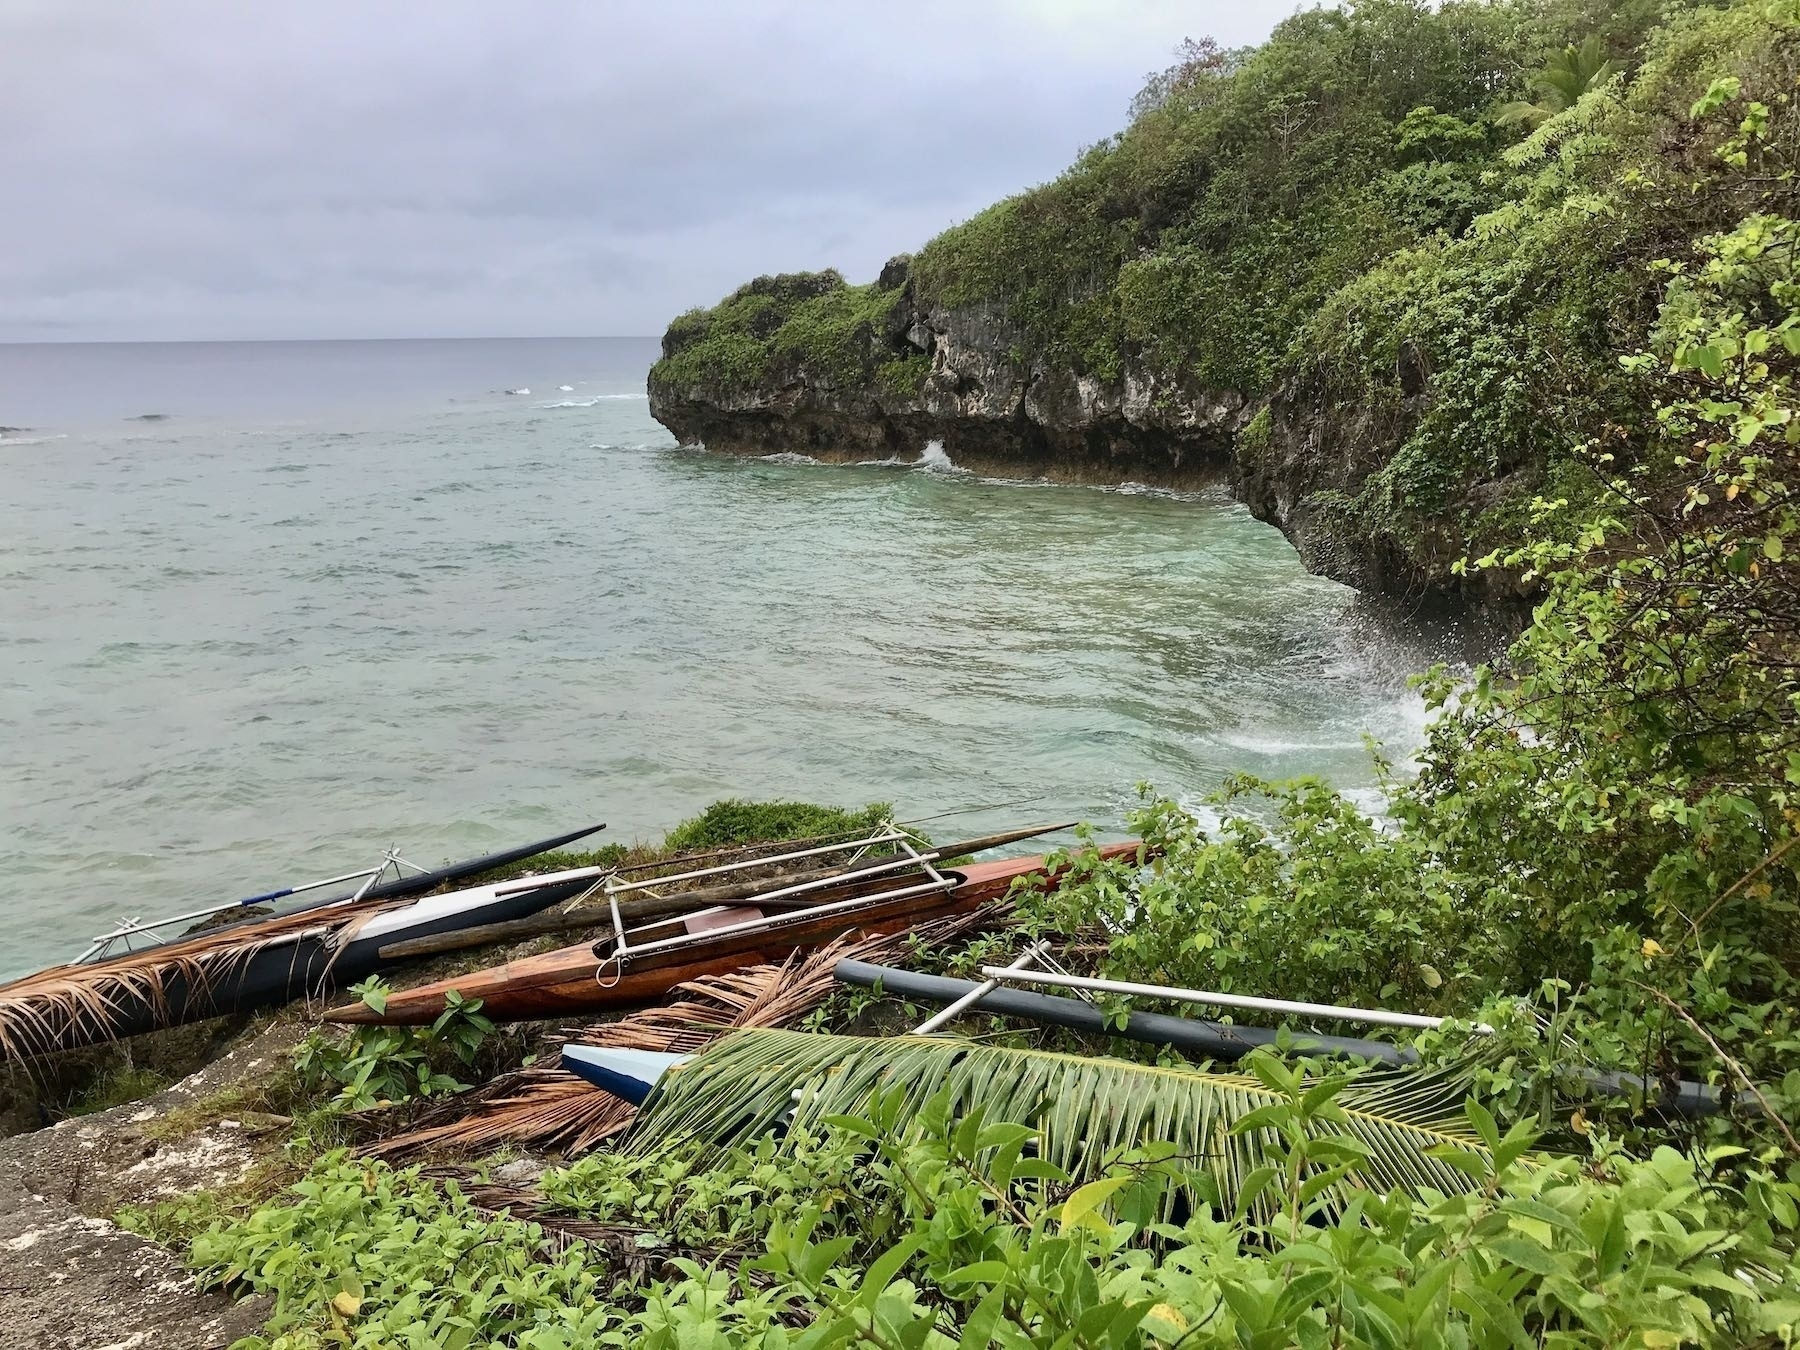 Outrigger canoes high above the water by steep rocky cliffs.